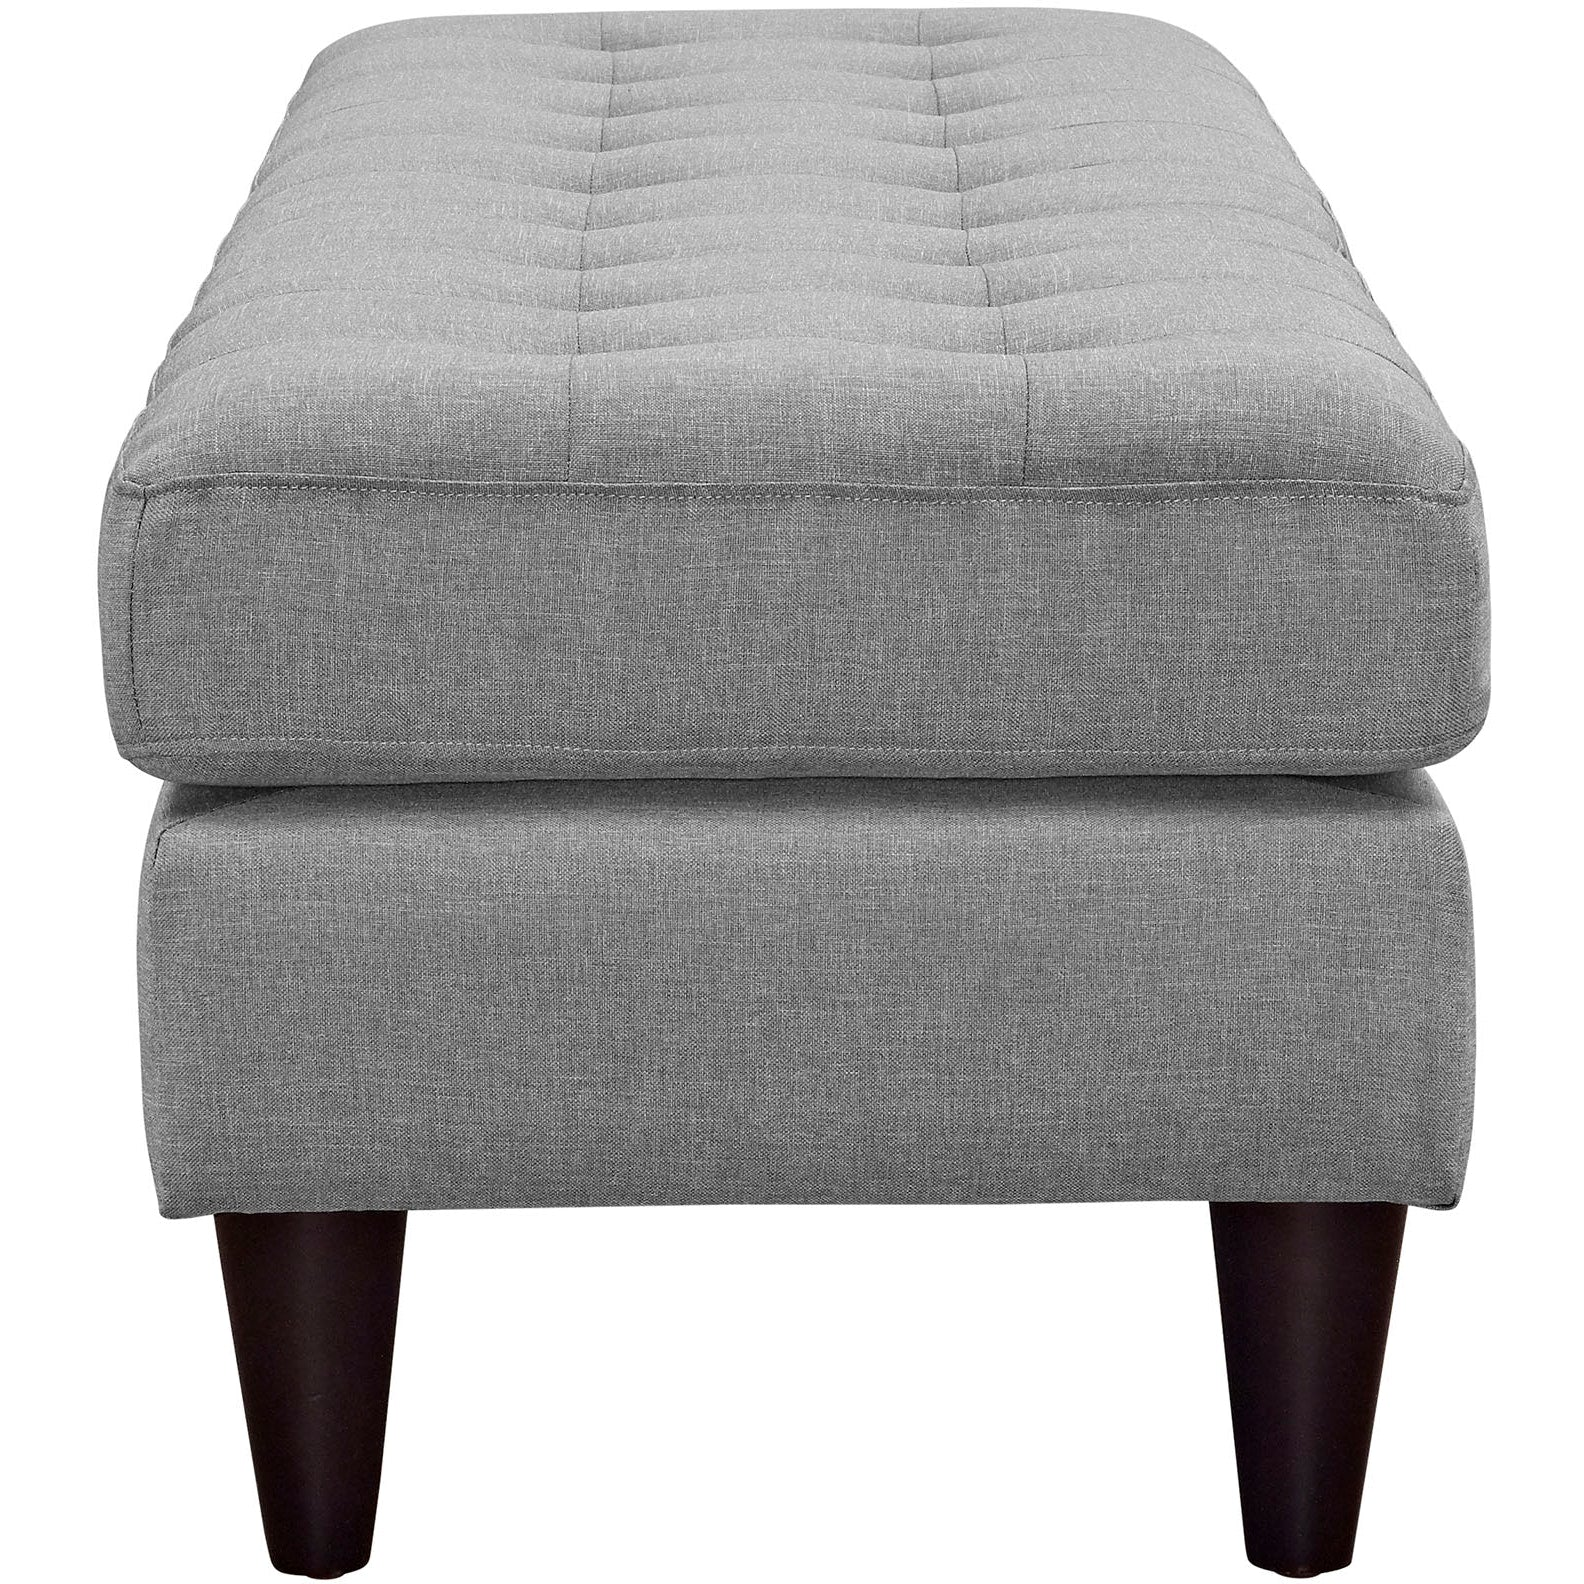 Empress Large Bench - Light Gray